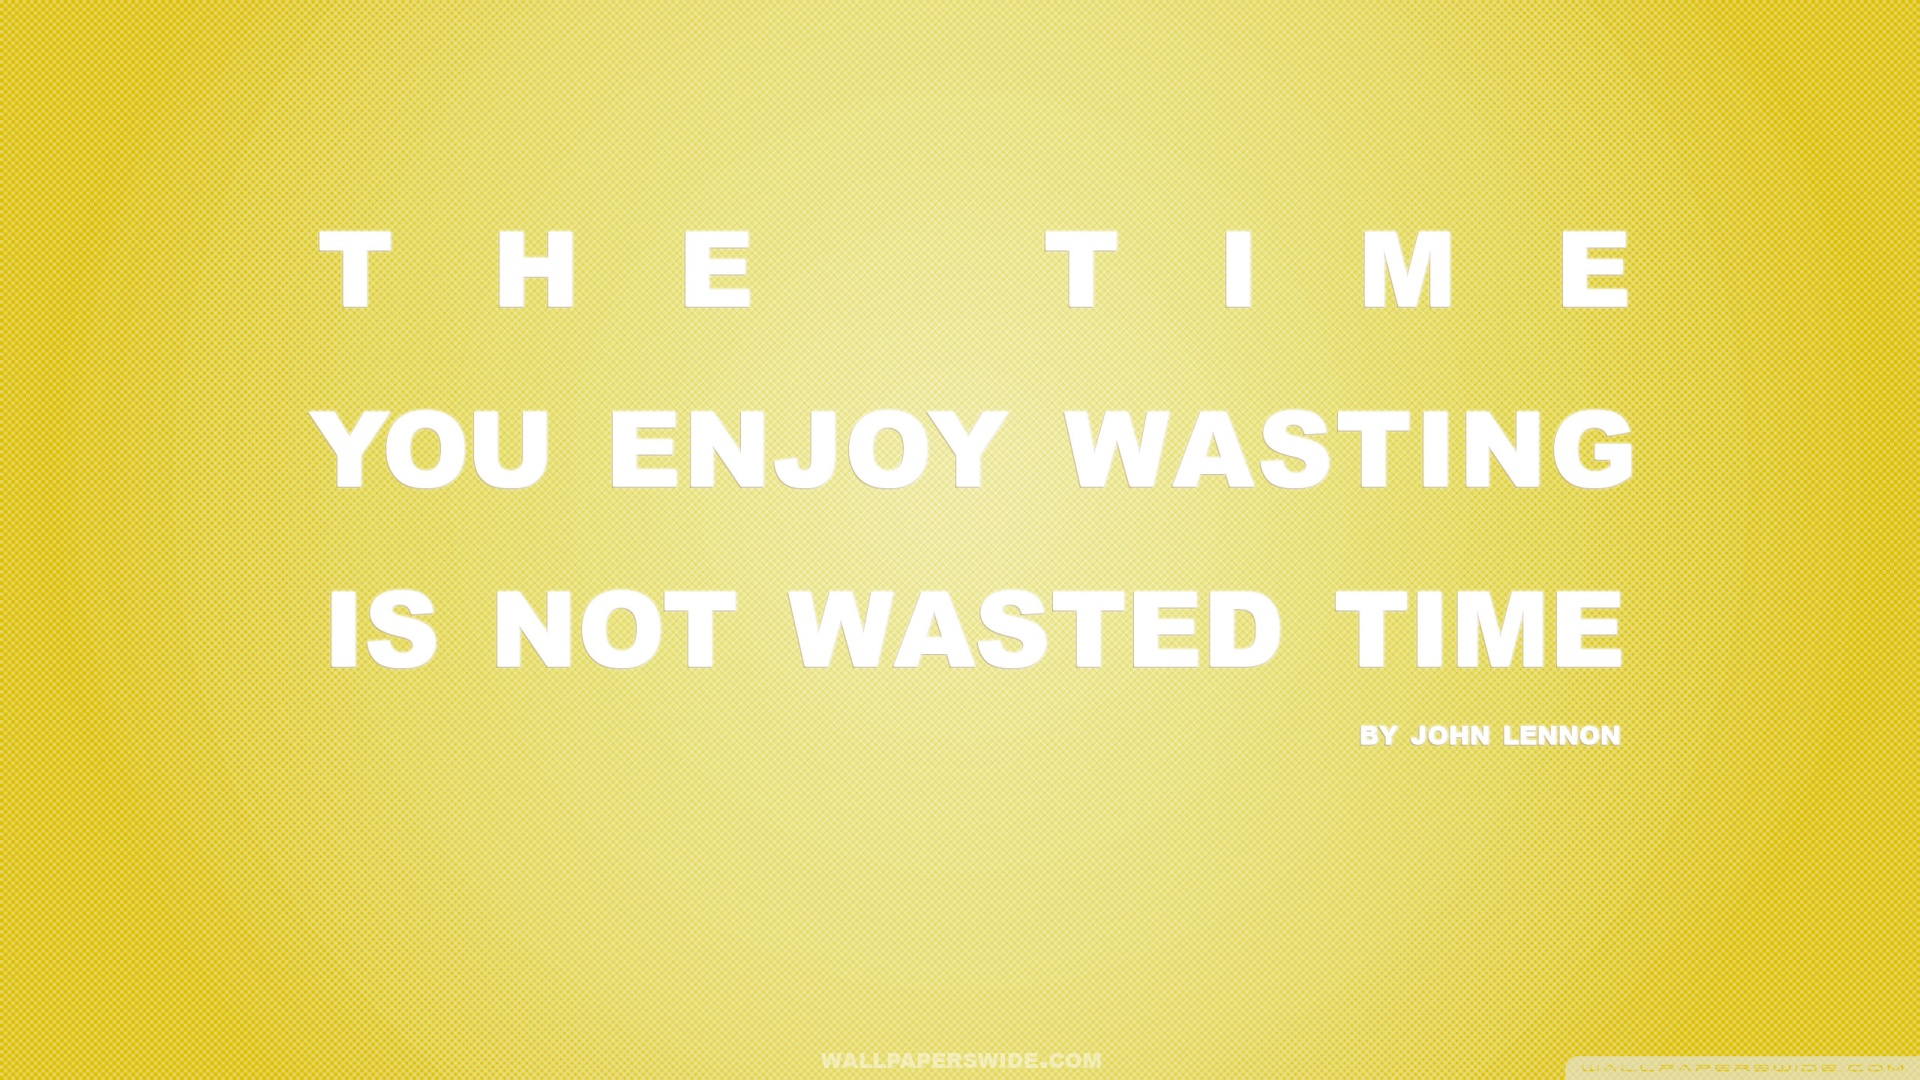 Not Wasted Time Quote Yellow Wallpaper 1920x1080 Wallpoper 441250 1920x1080